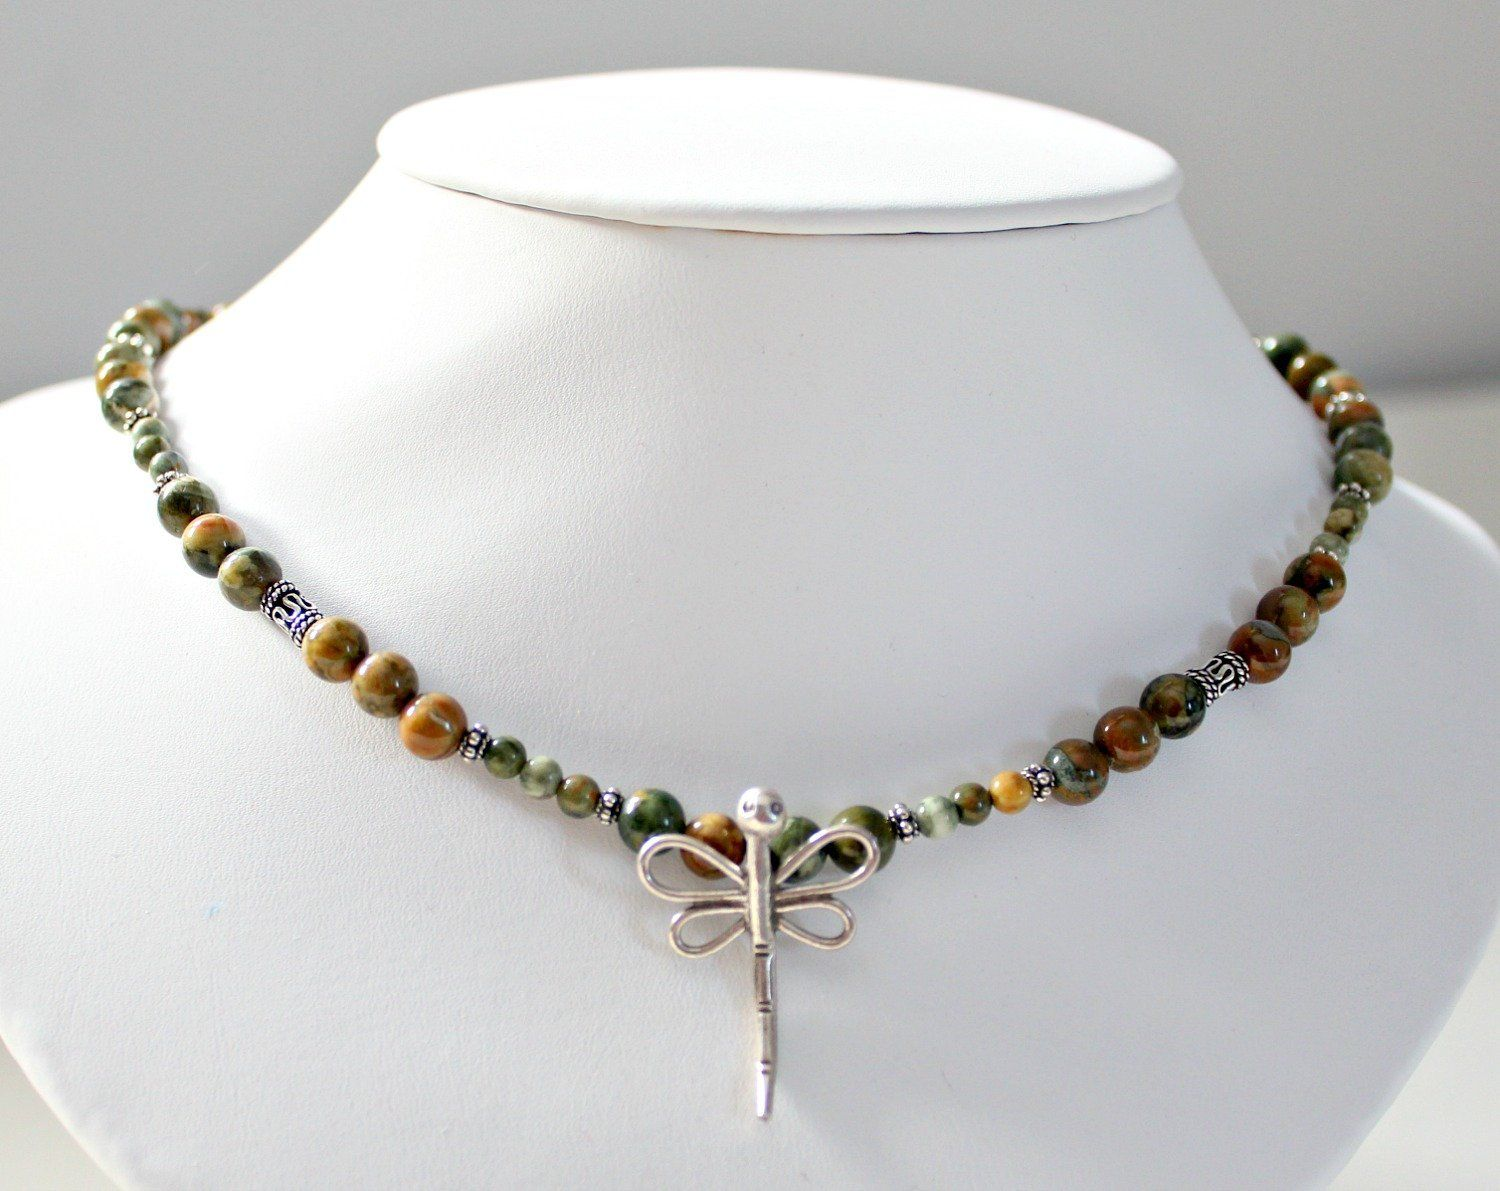 Rainforest Jasper Dragonfly Necklace Daughter In Law Retirement Gift Mother Birthday Gifts 50th For Women